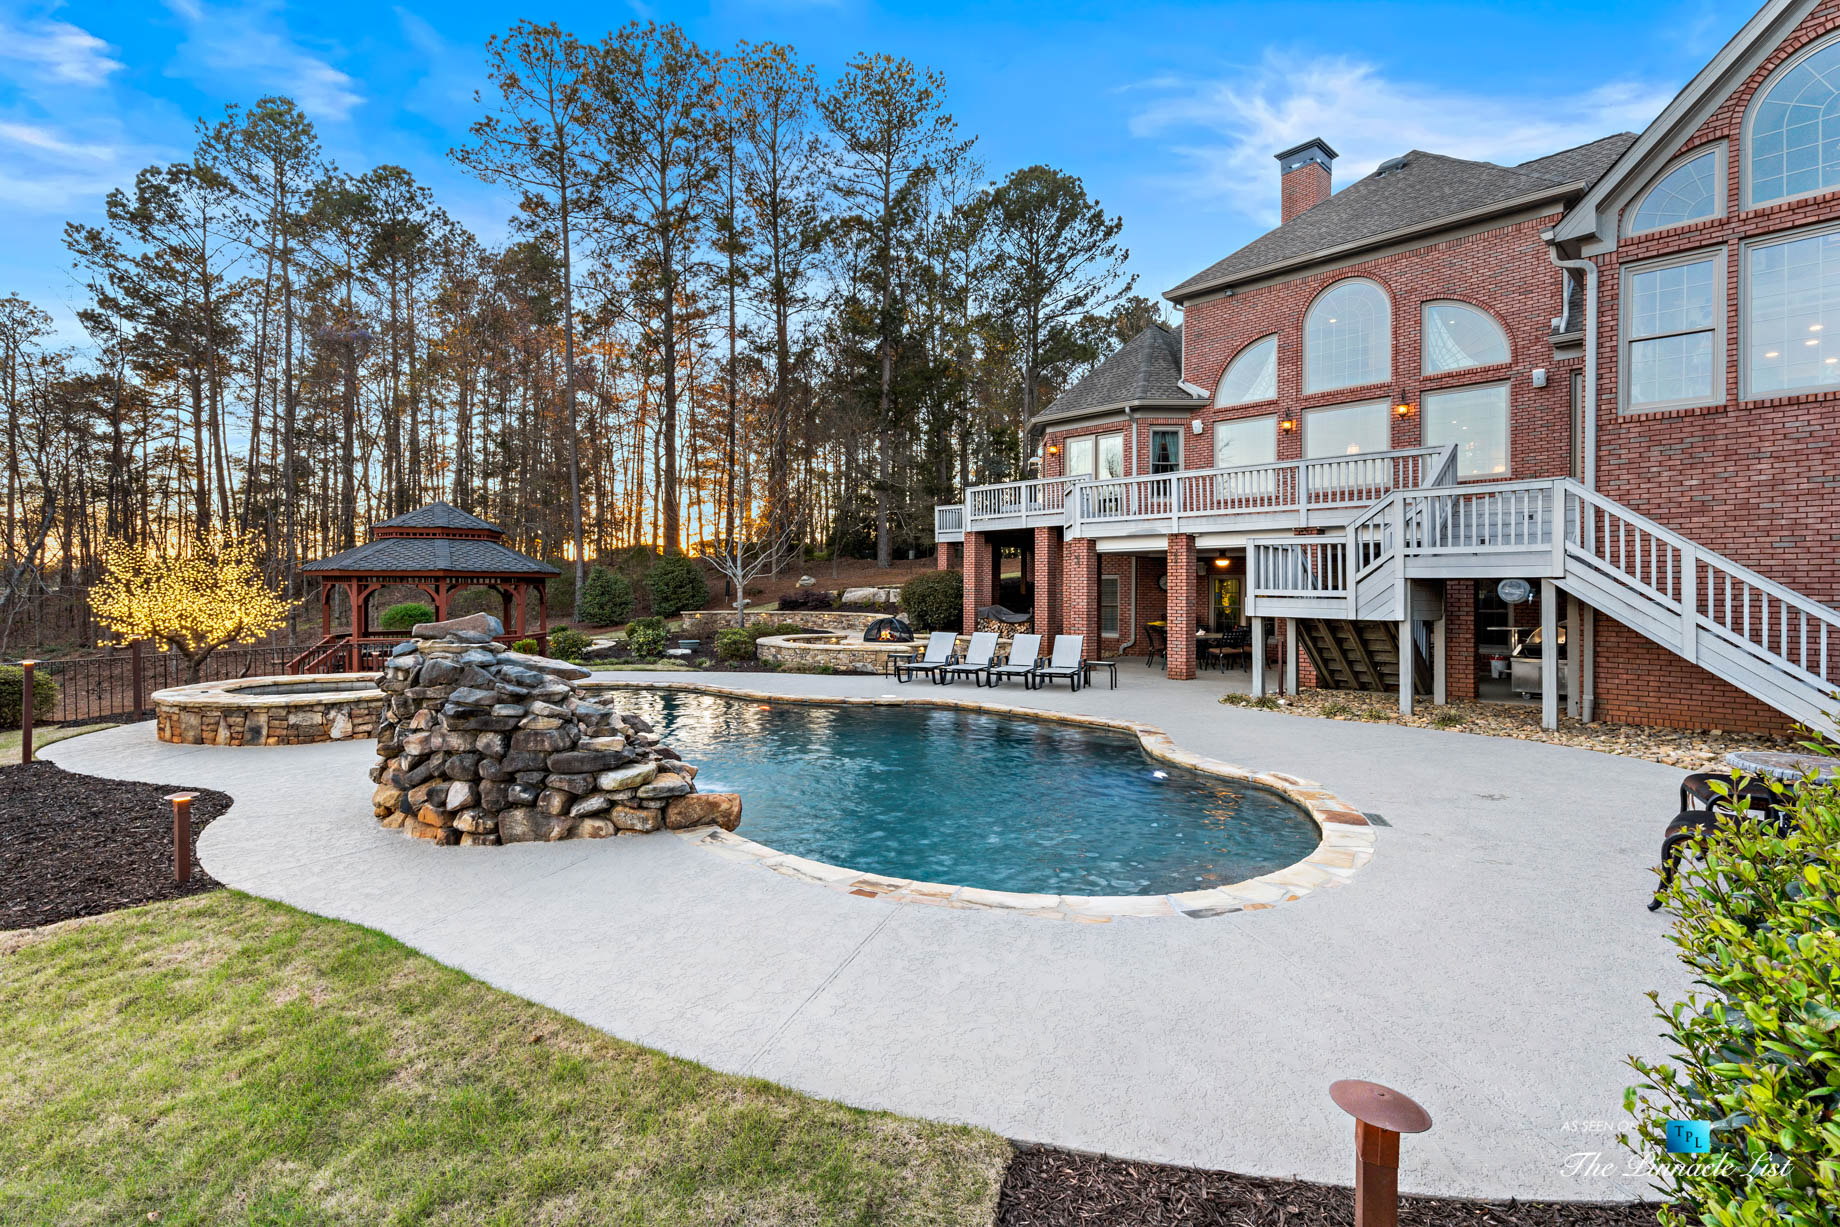 2219 Costley Mill Rd NE, Conyers, GA, USA - Backyard Pool - Luxury Real Estate - Equestrian Country Home